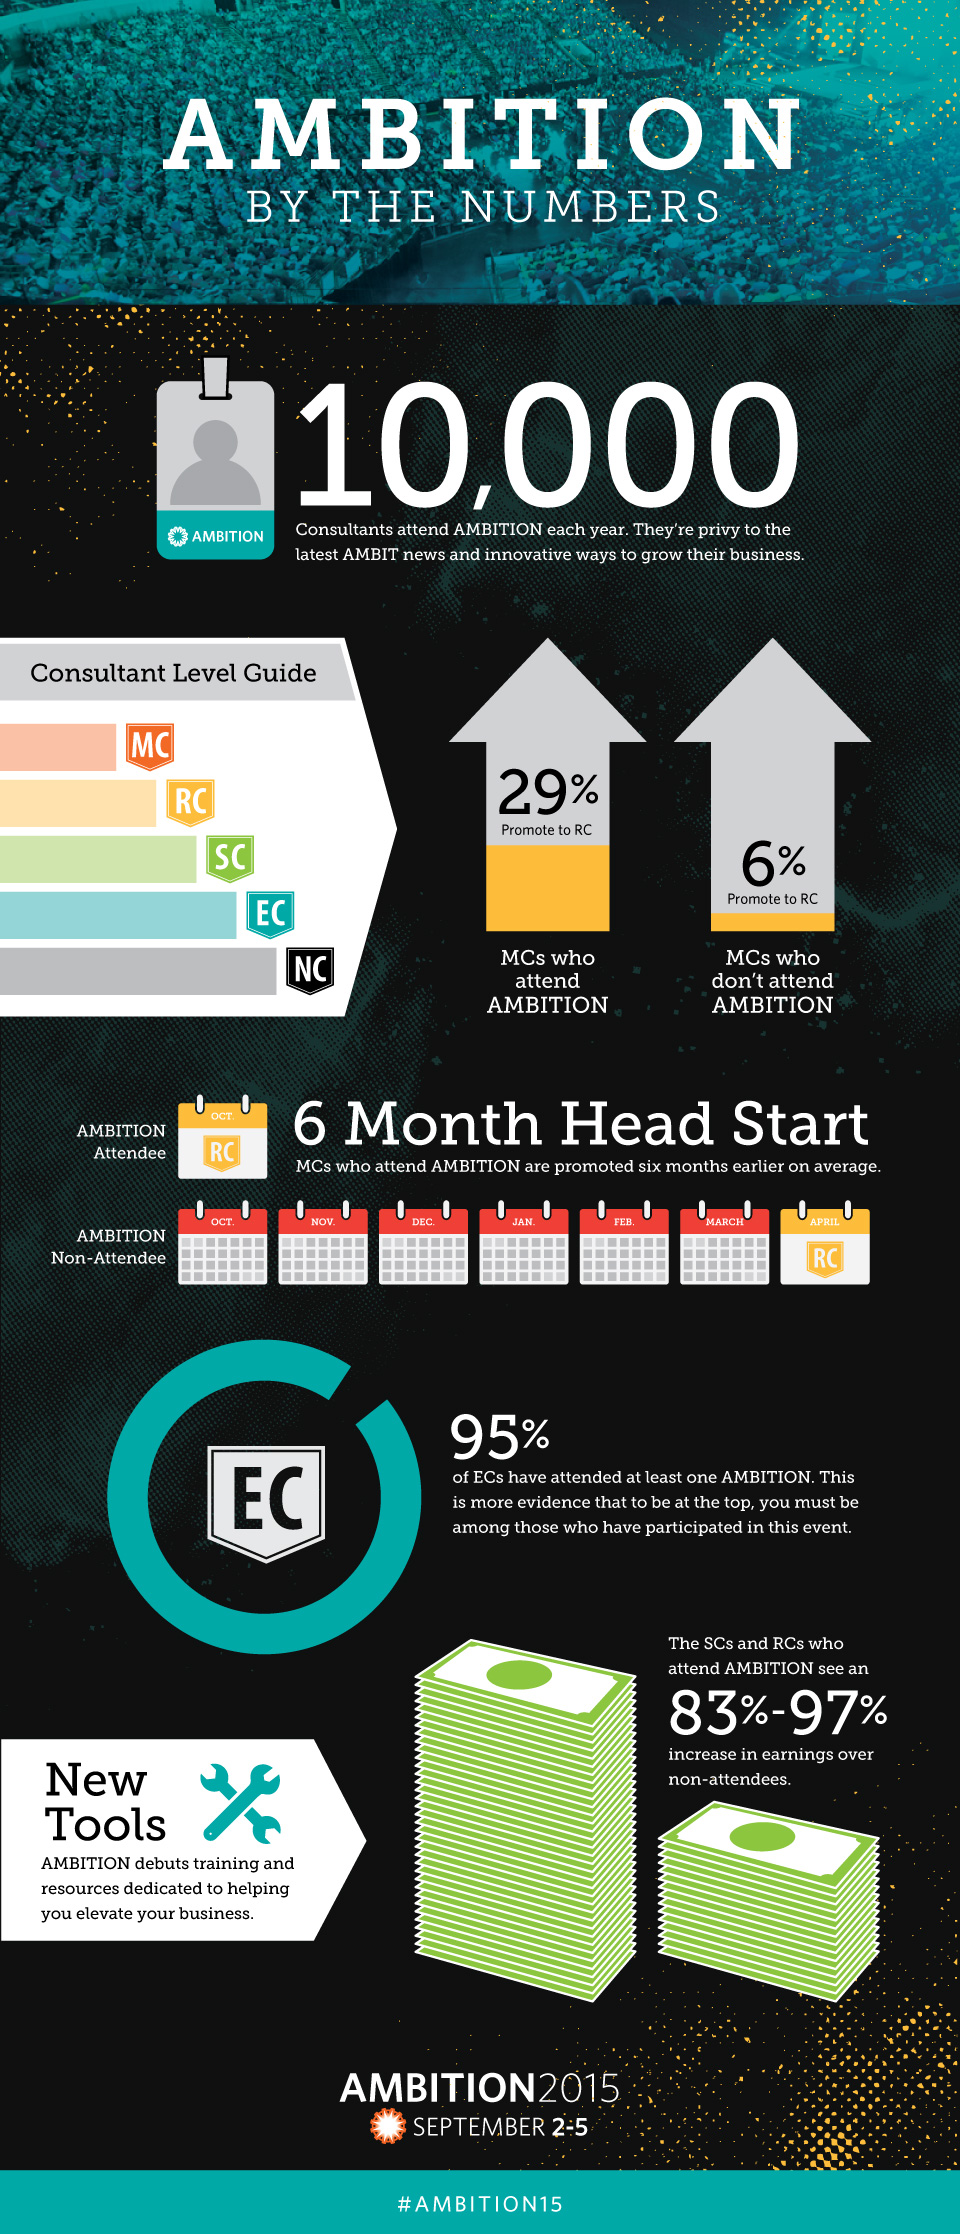 Infographic: AMBITION Impact on Ambit Consultants (Infographic) | Ambit Energy